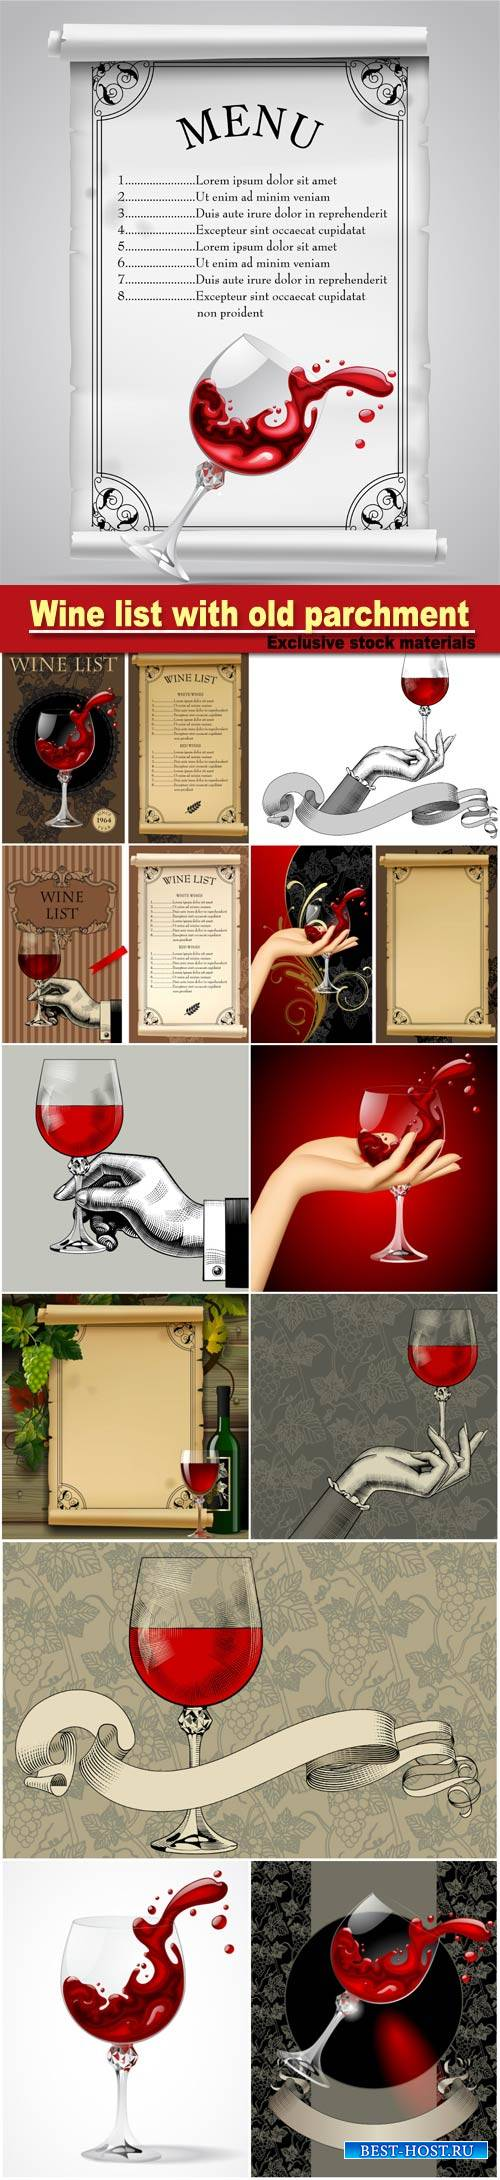 Wine list with old parchment, grapes, bottle and wineglass with splashed wine